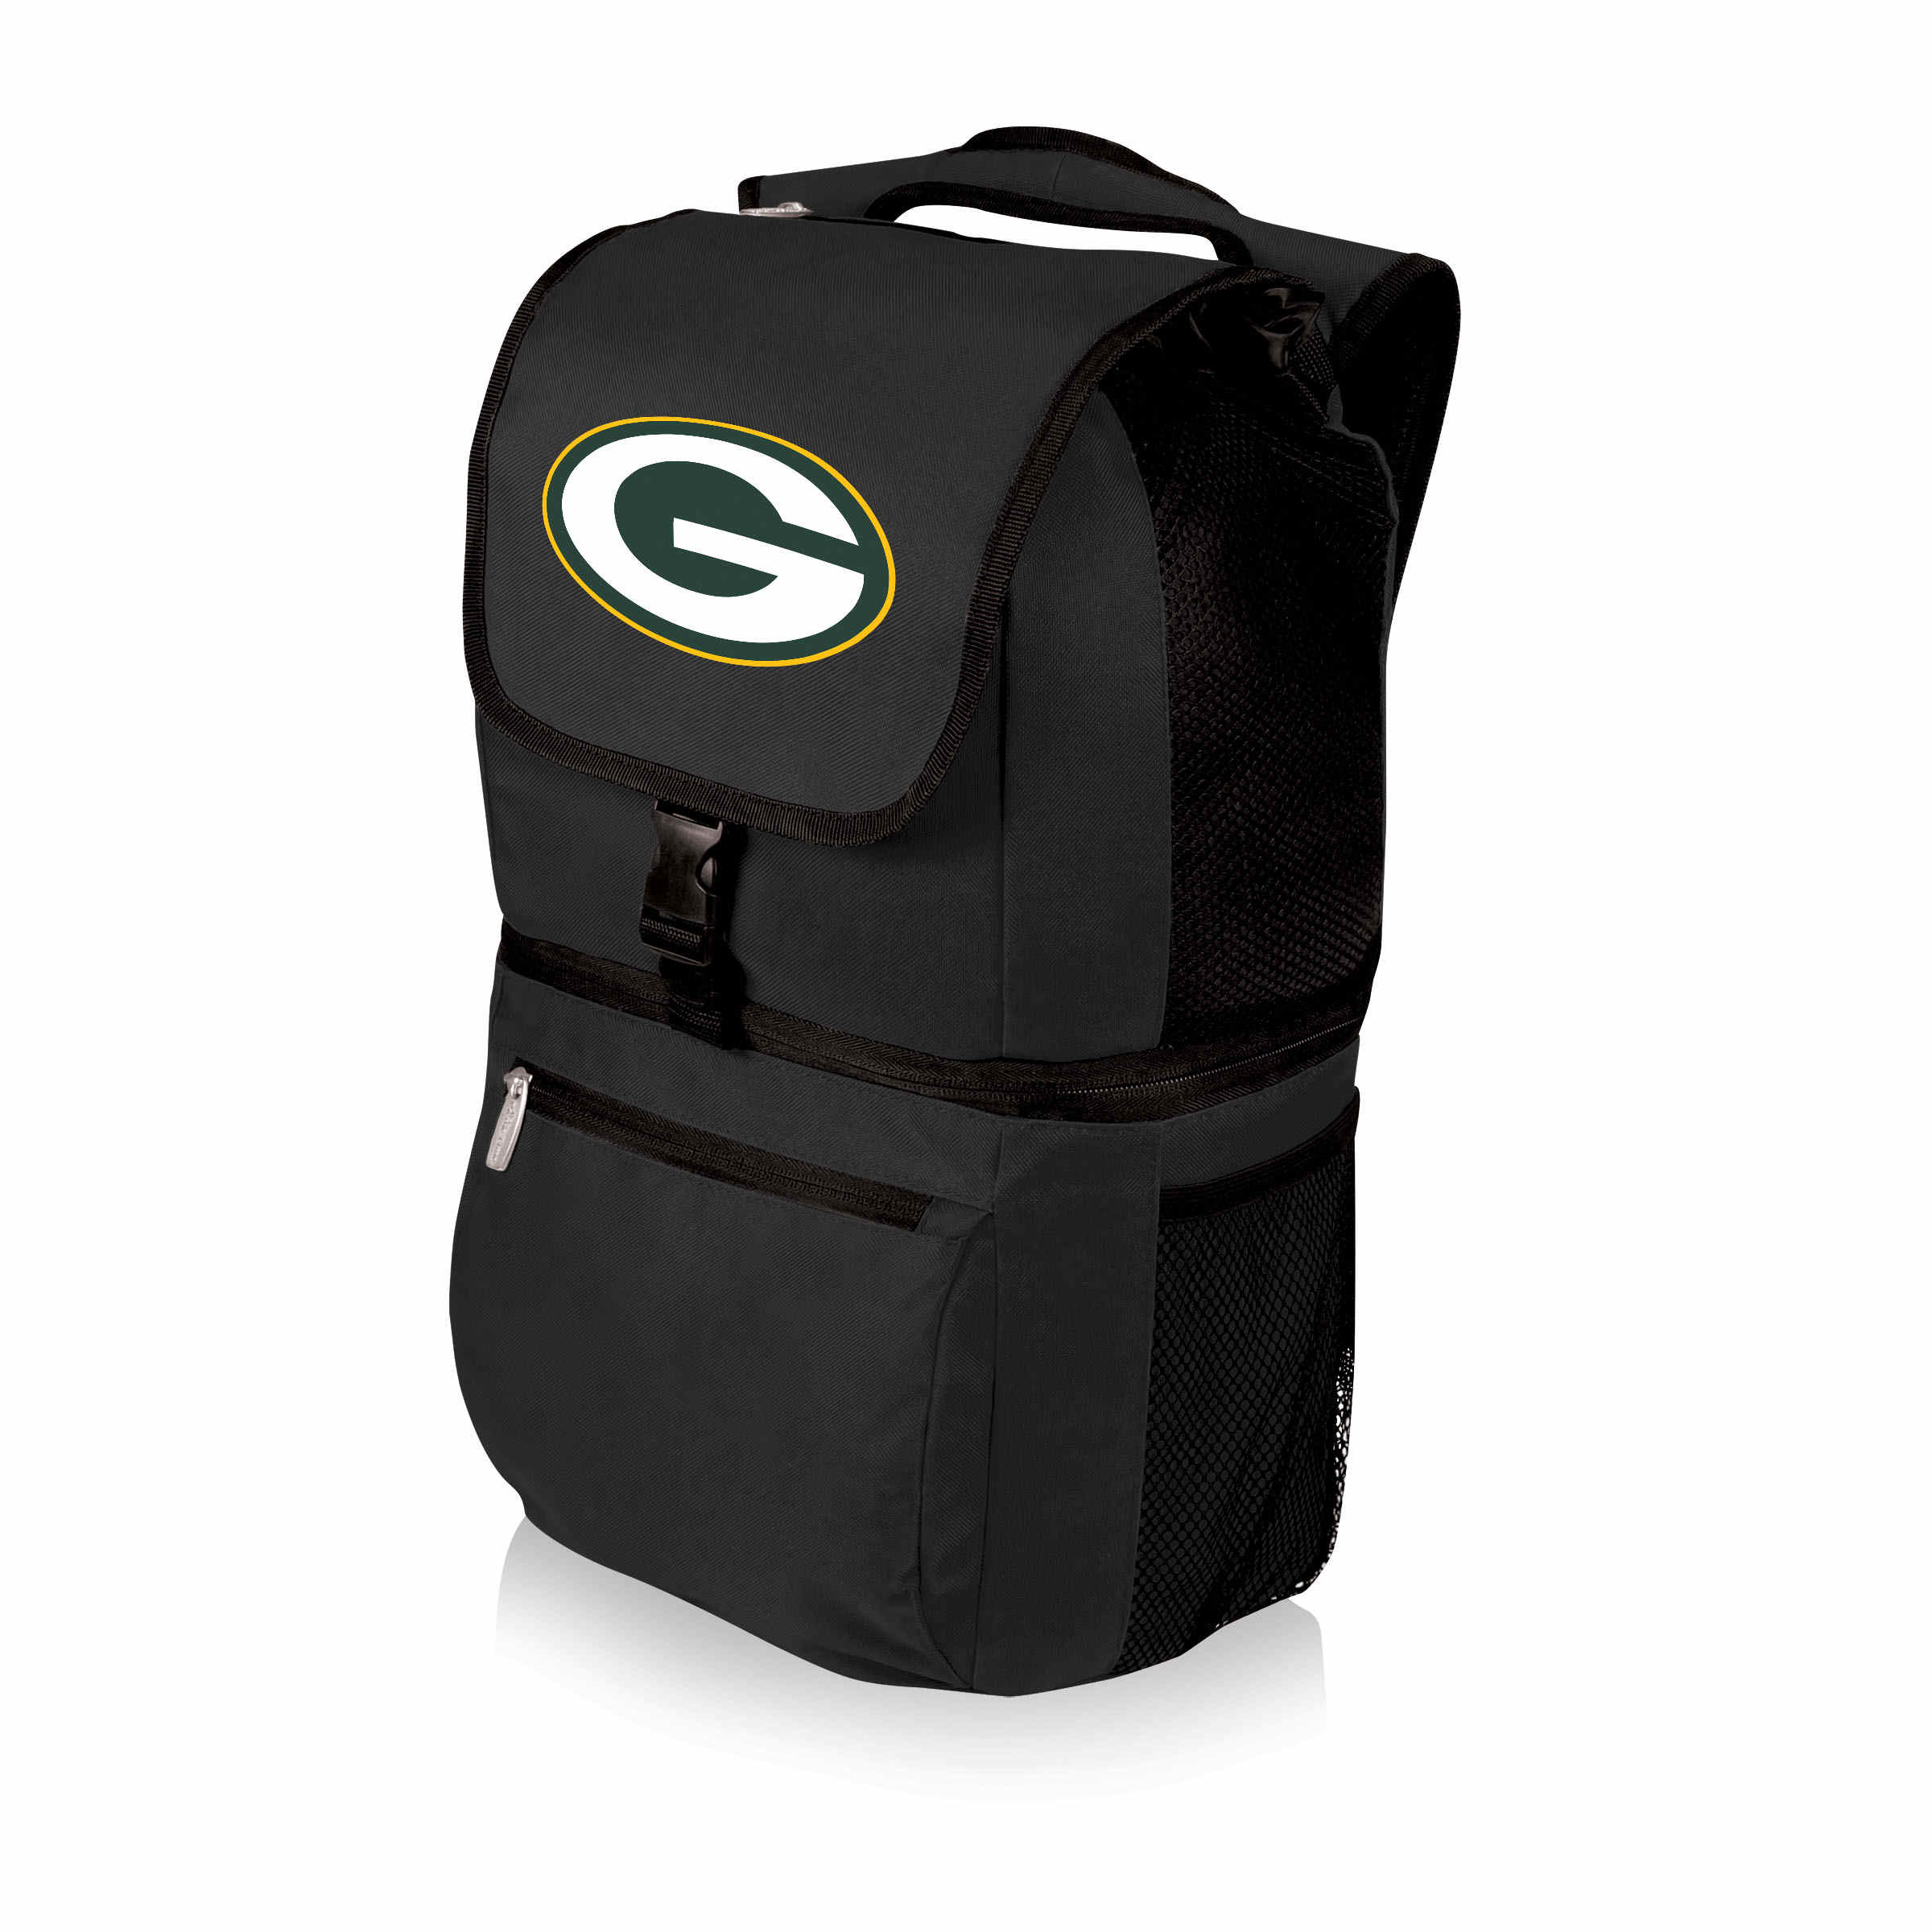 Picnic Time Nfl Zuma Green Bay Packers